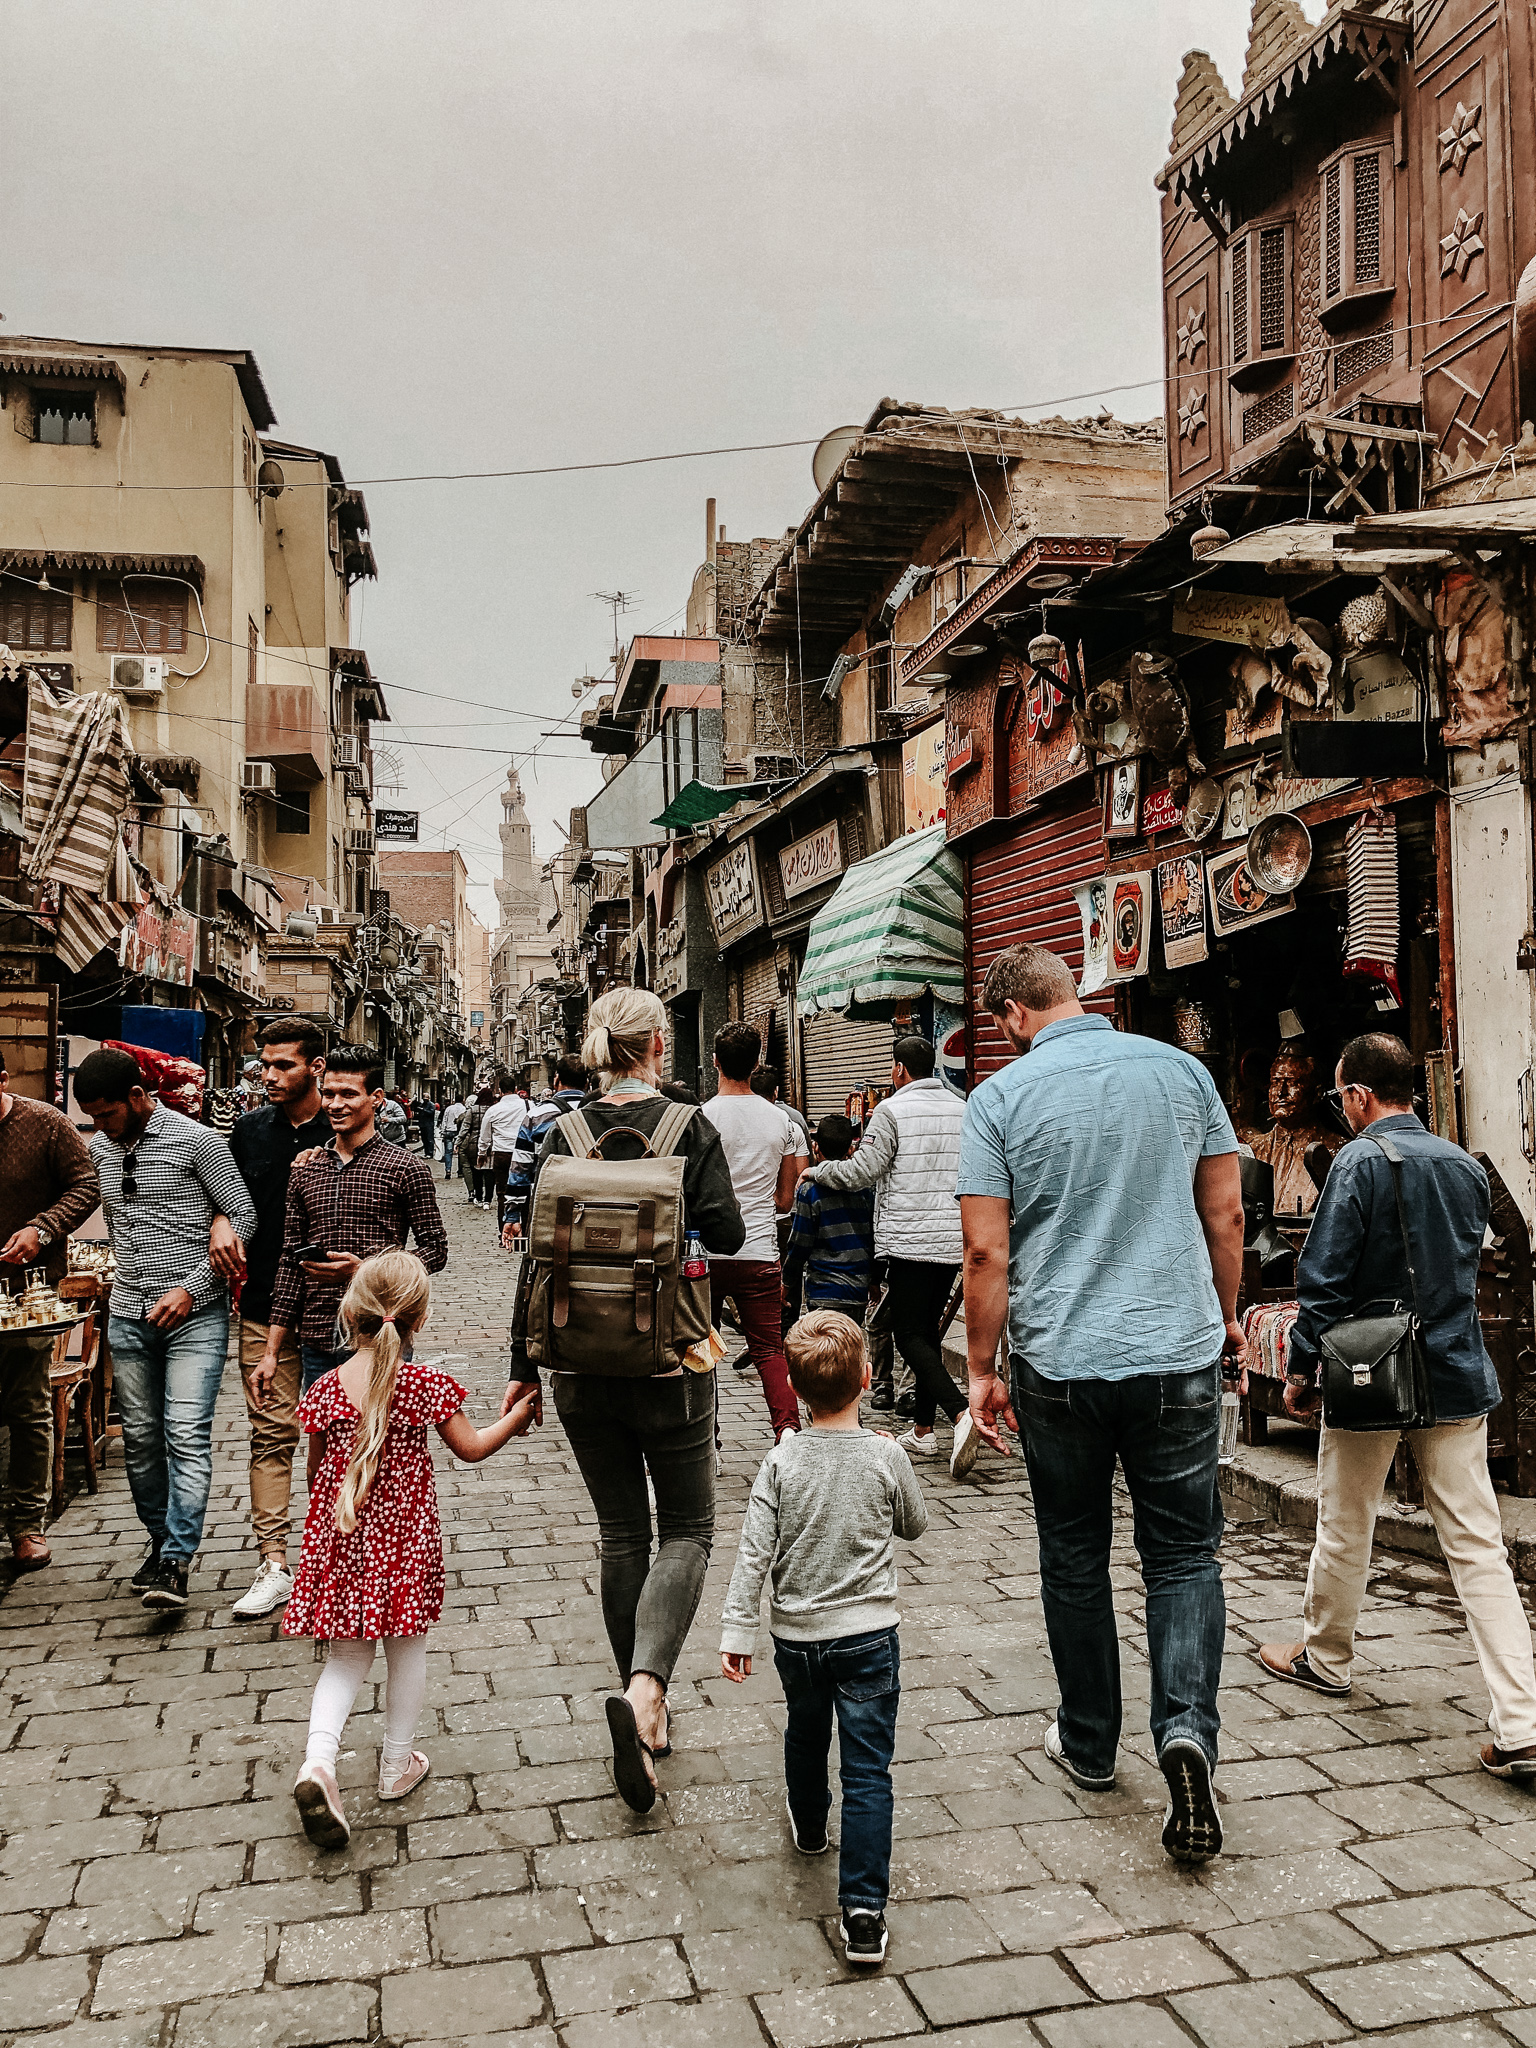 Exploring Old Cairo with my brother and nephew. (iPhone Photo Credit: Hope Livingston, SIL)